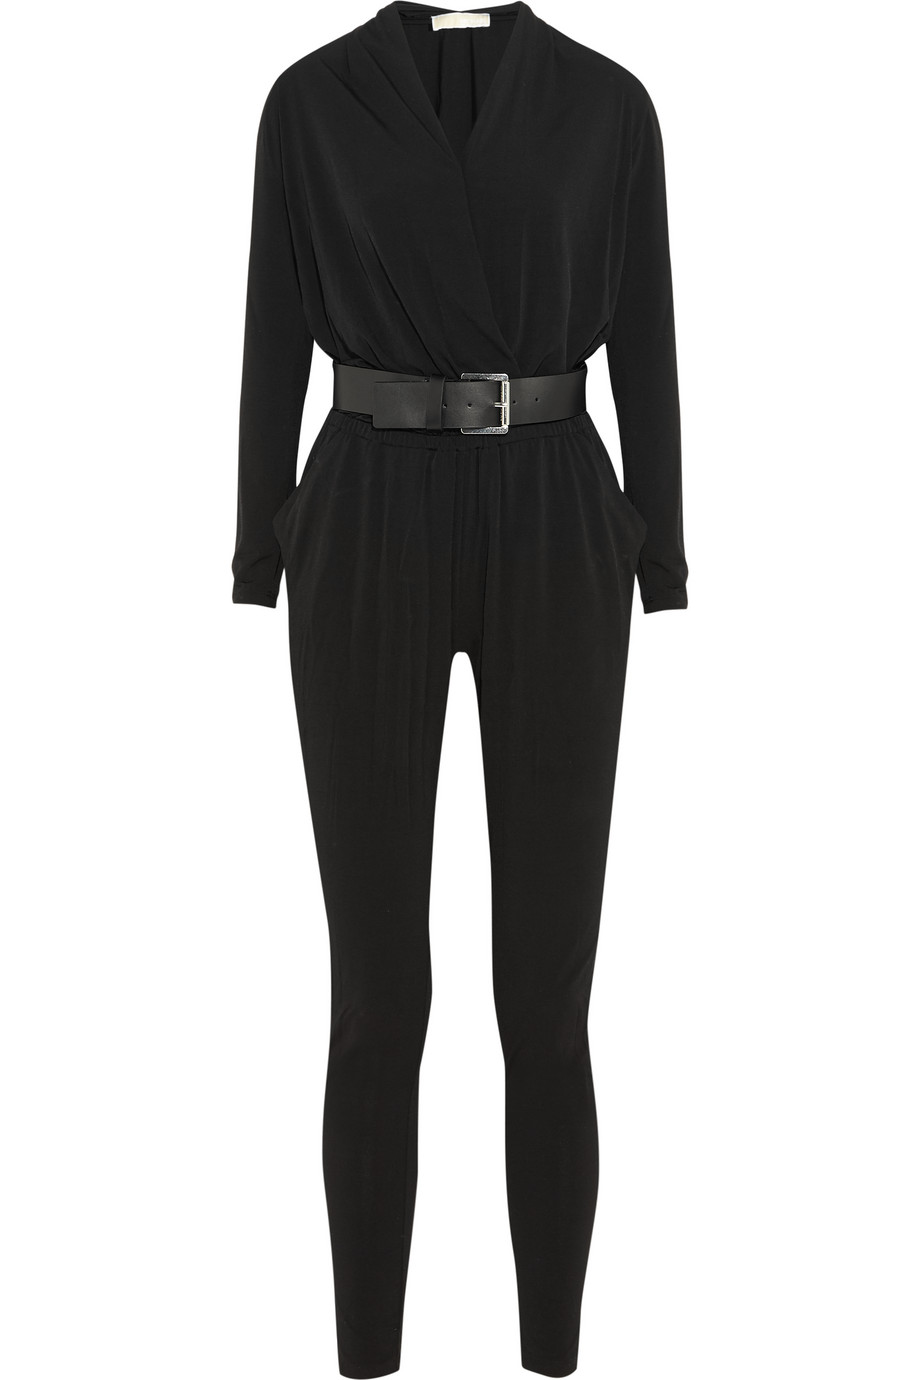 Belted Stretch-Jersey Jumpsuit, Michael Michael Kors, Black, Women's